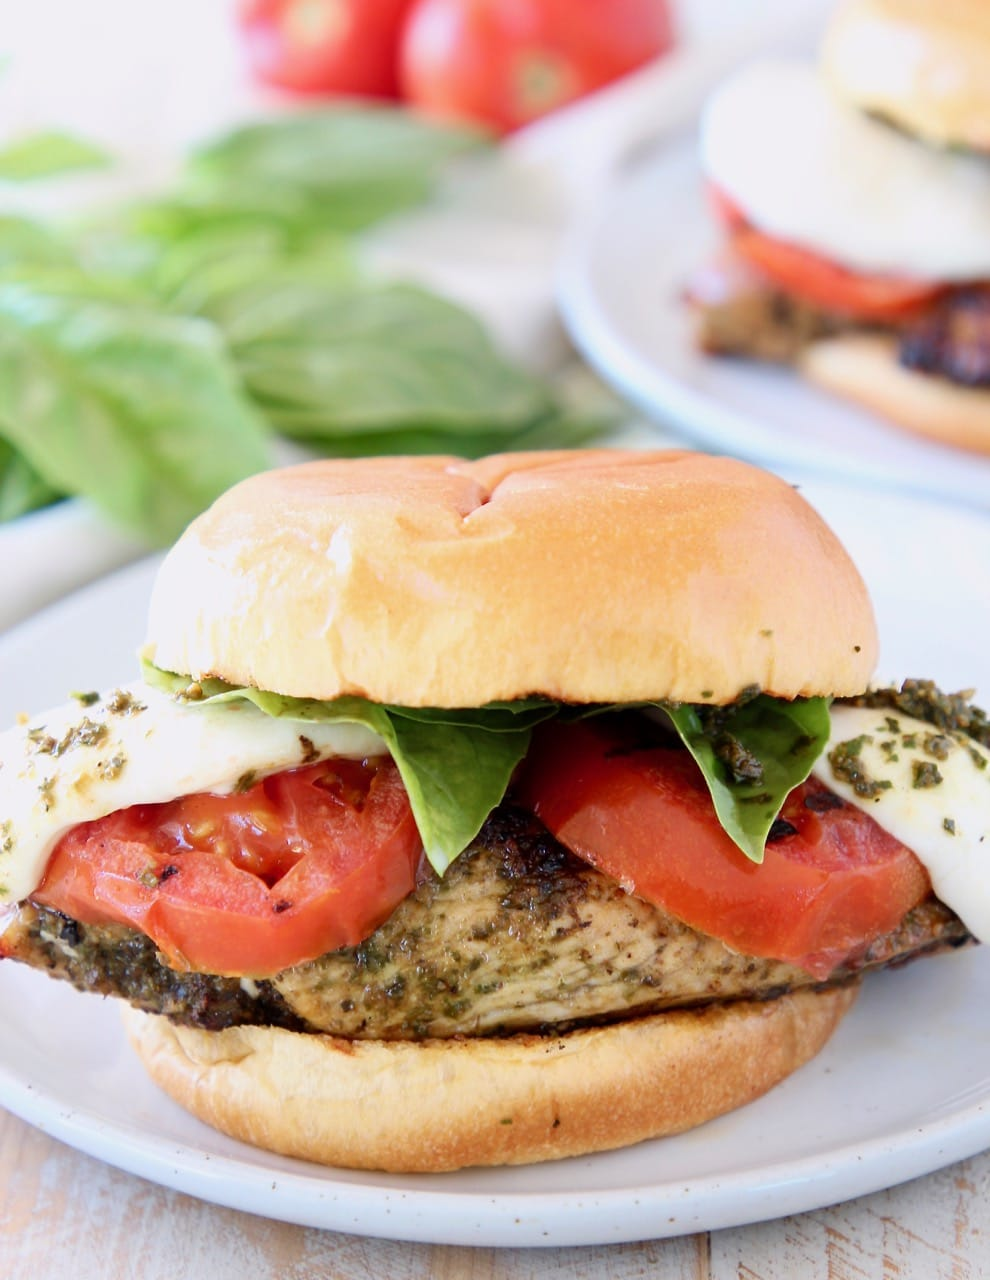 Pesto grilled chicken sandwich with grilled tomatoes and mozzarella cheese